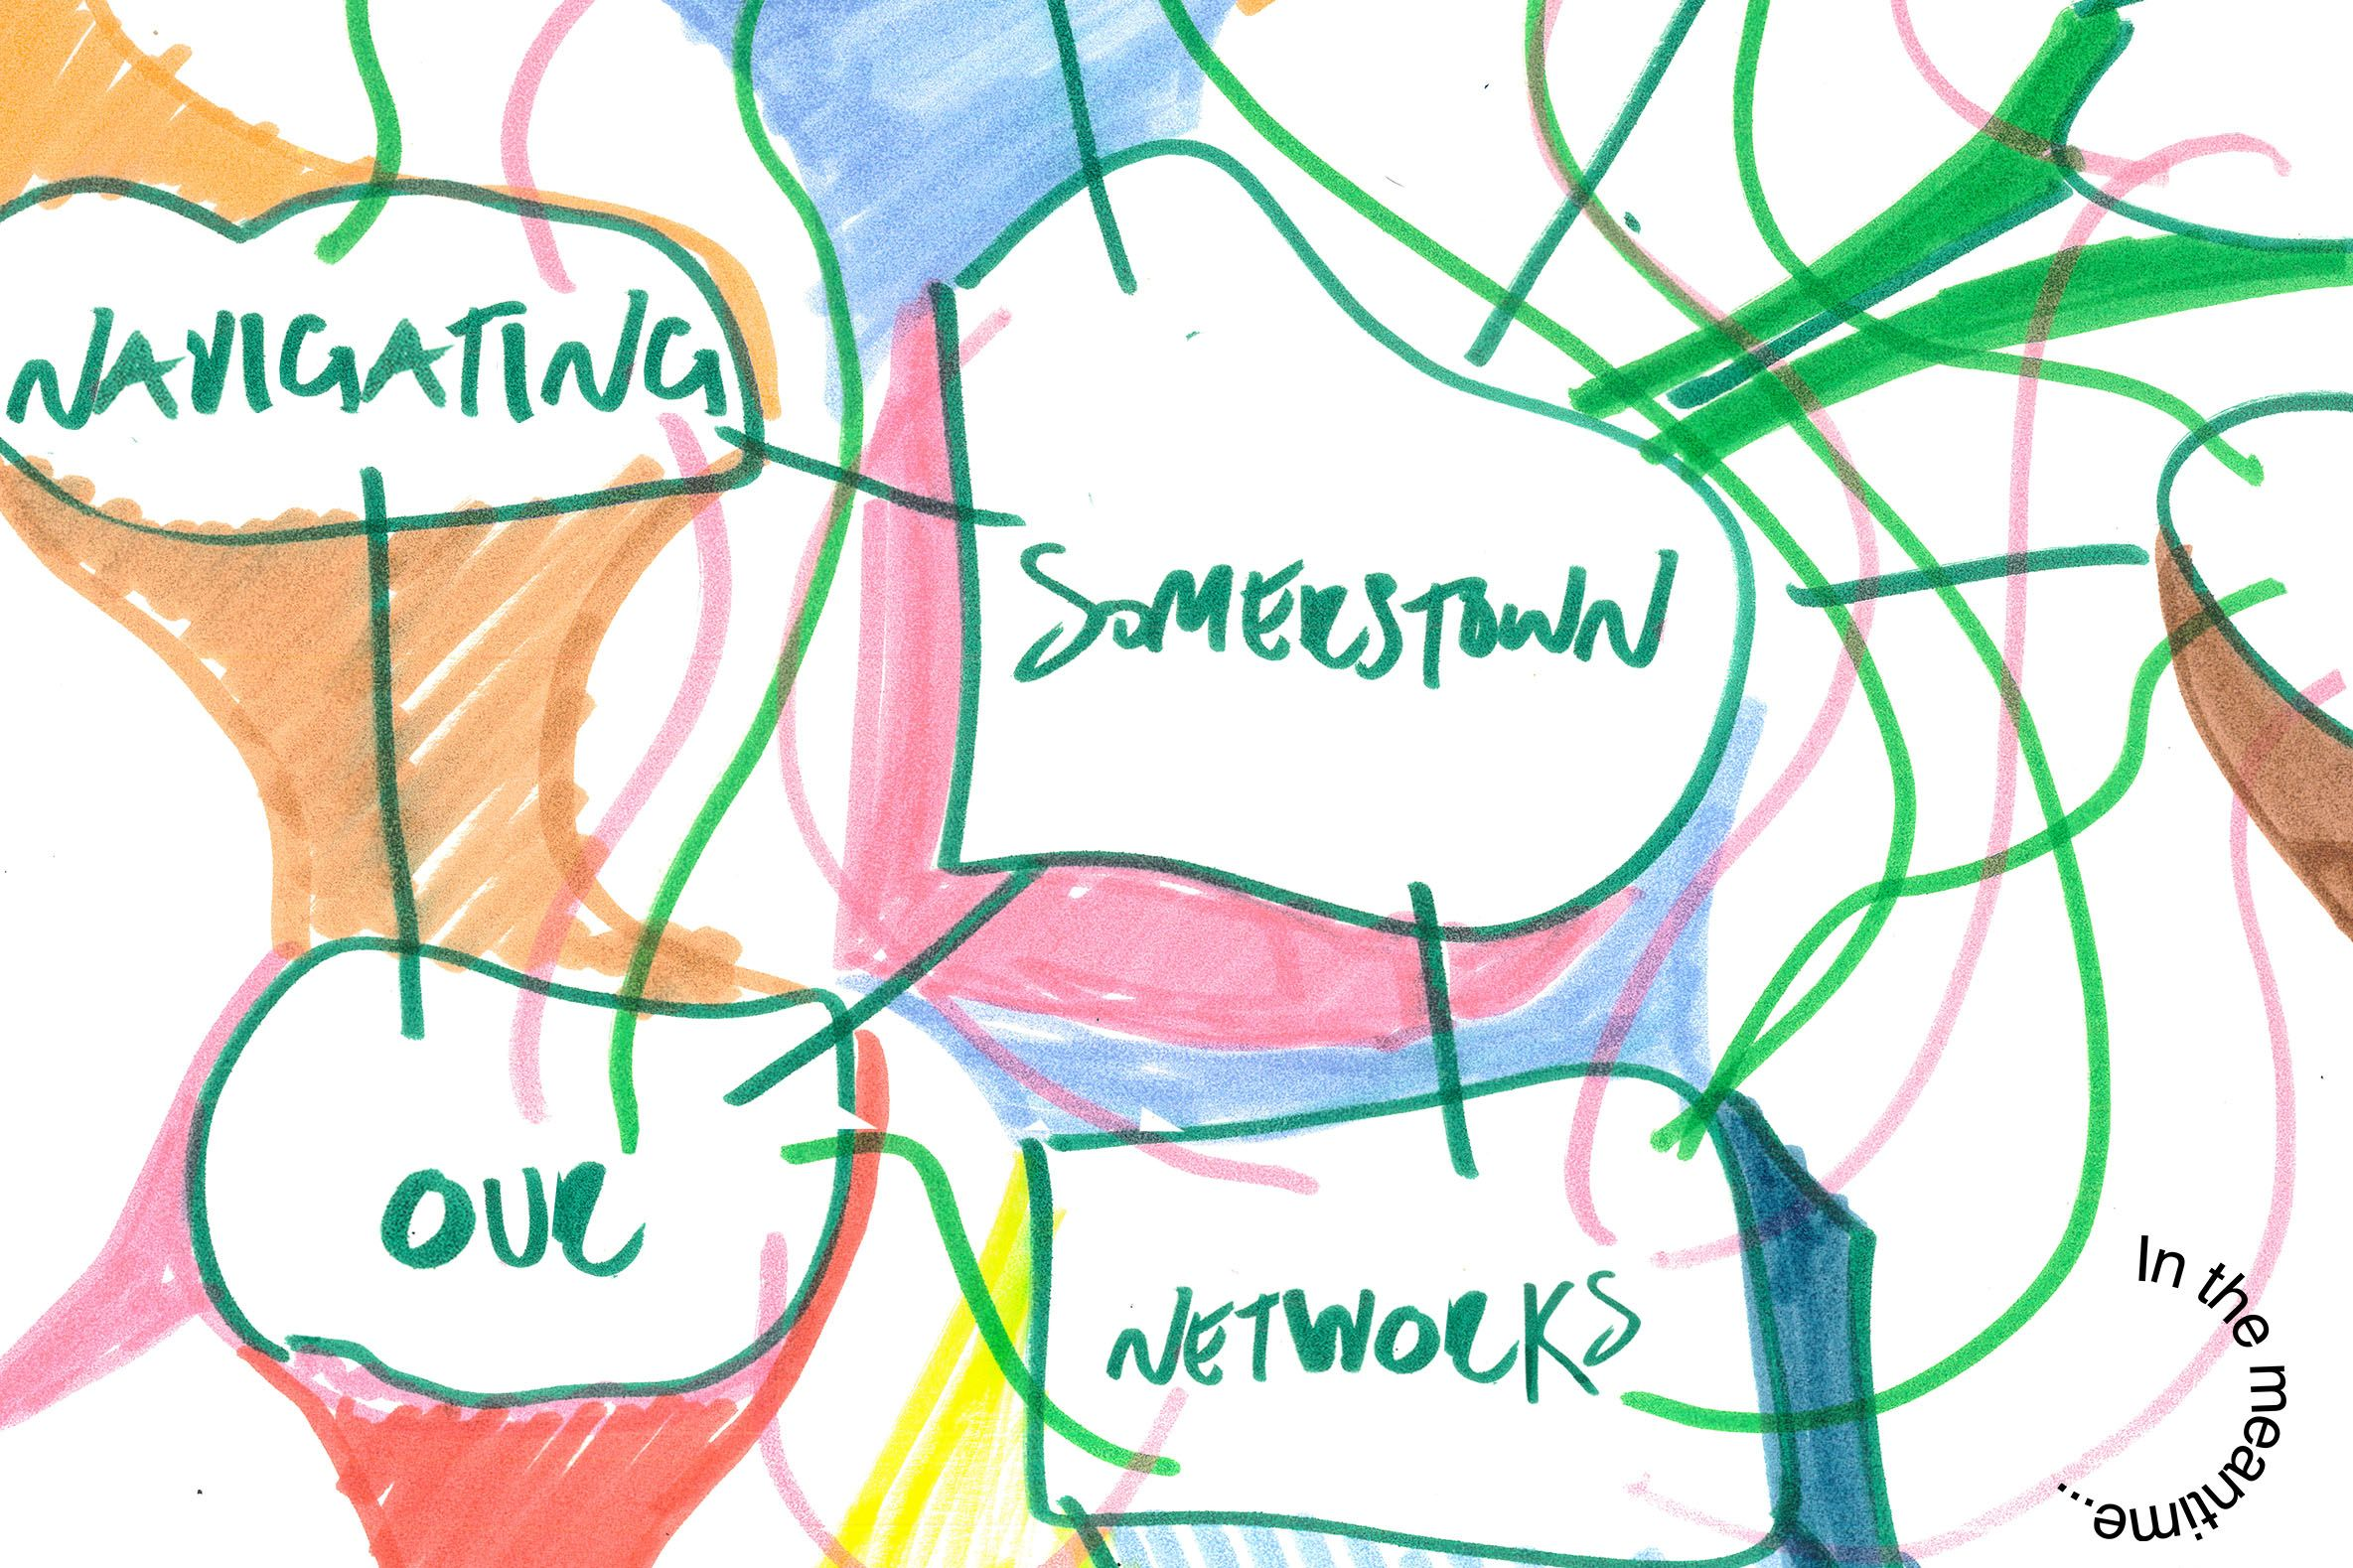 Diagram illustrating Navigating Our Somers Town Networks